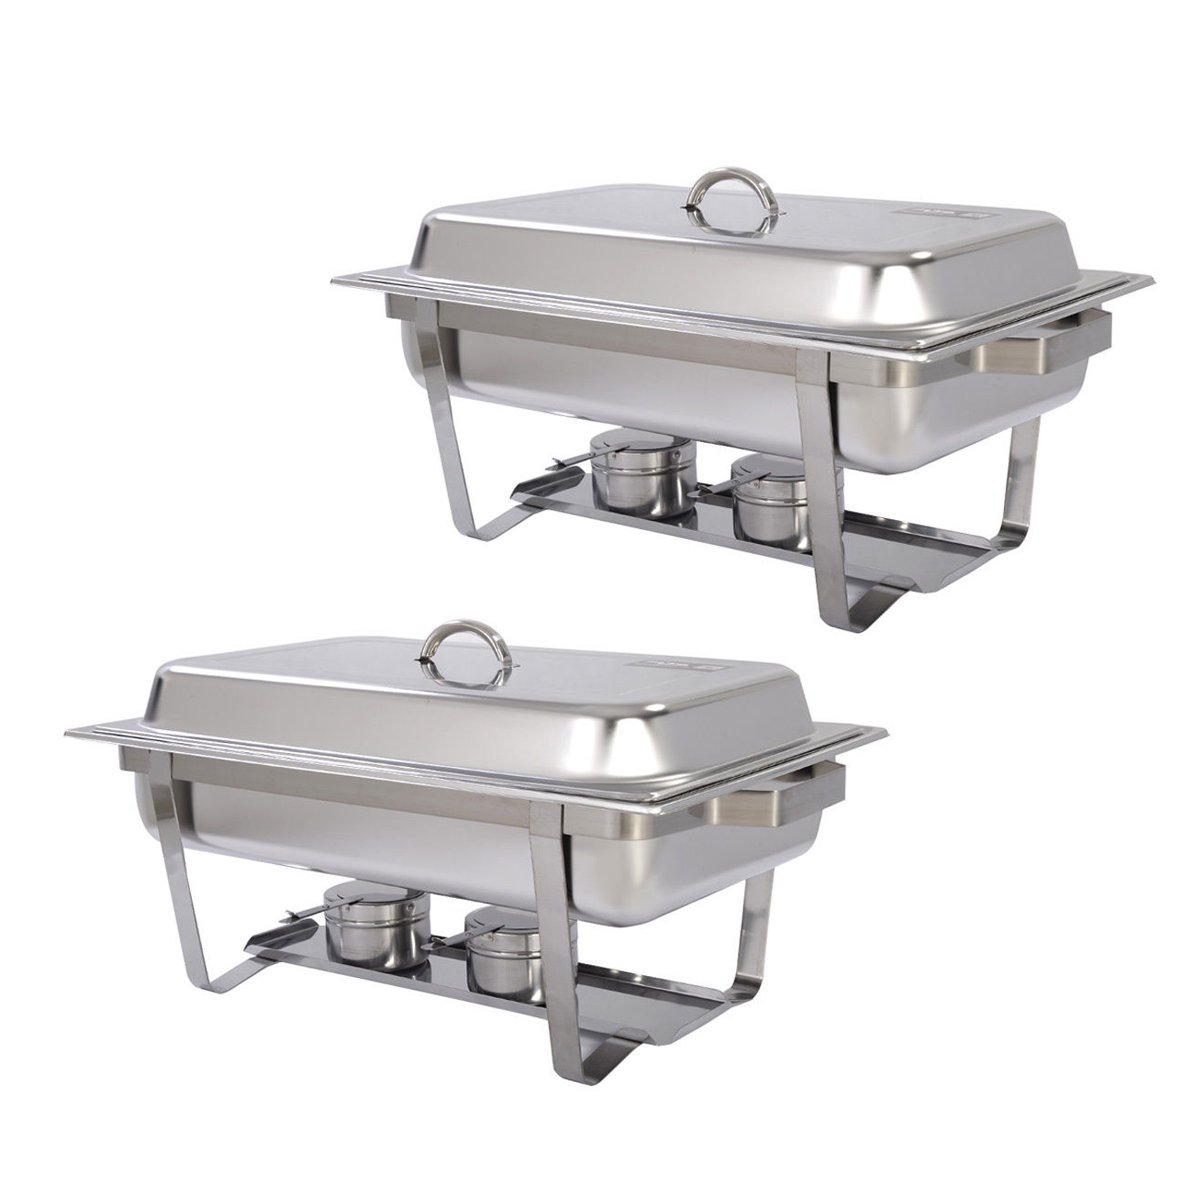 8 Quart Chafing Dish Chafer Full Size - Stainless Steel Rectangular - 2 Pack by E